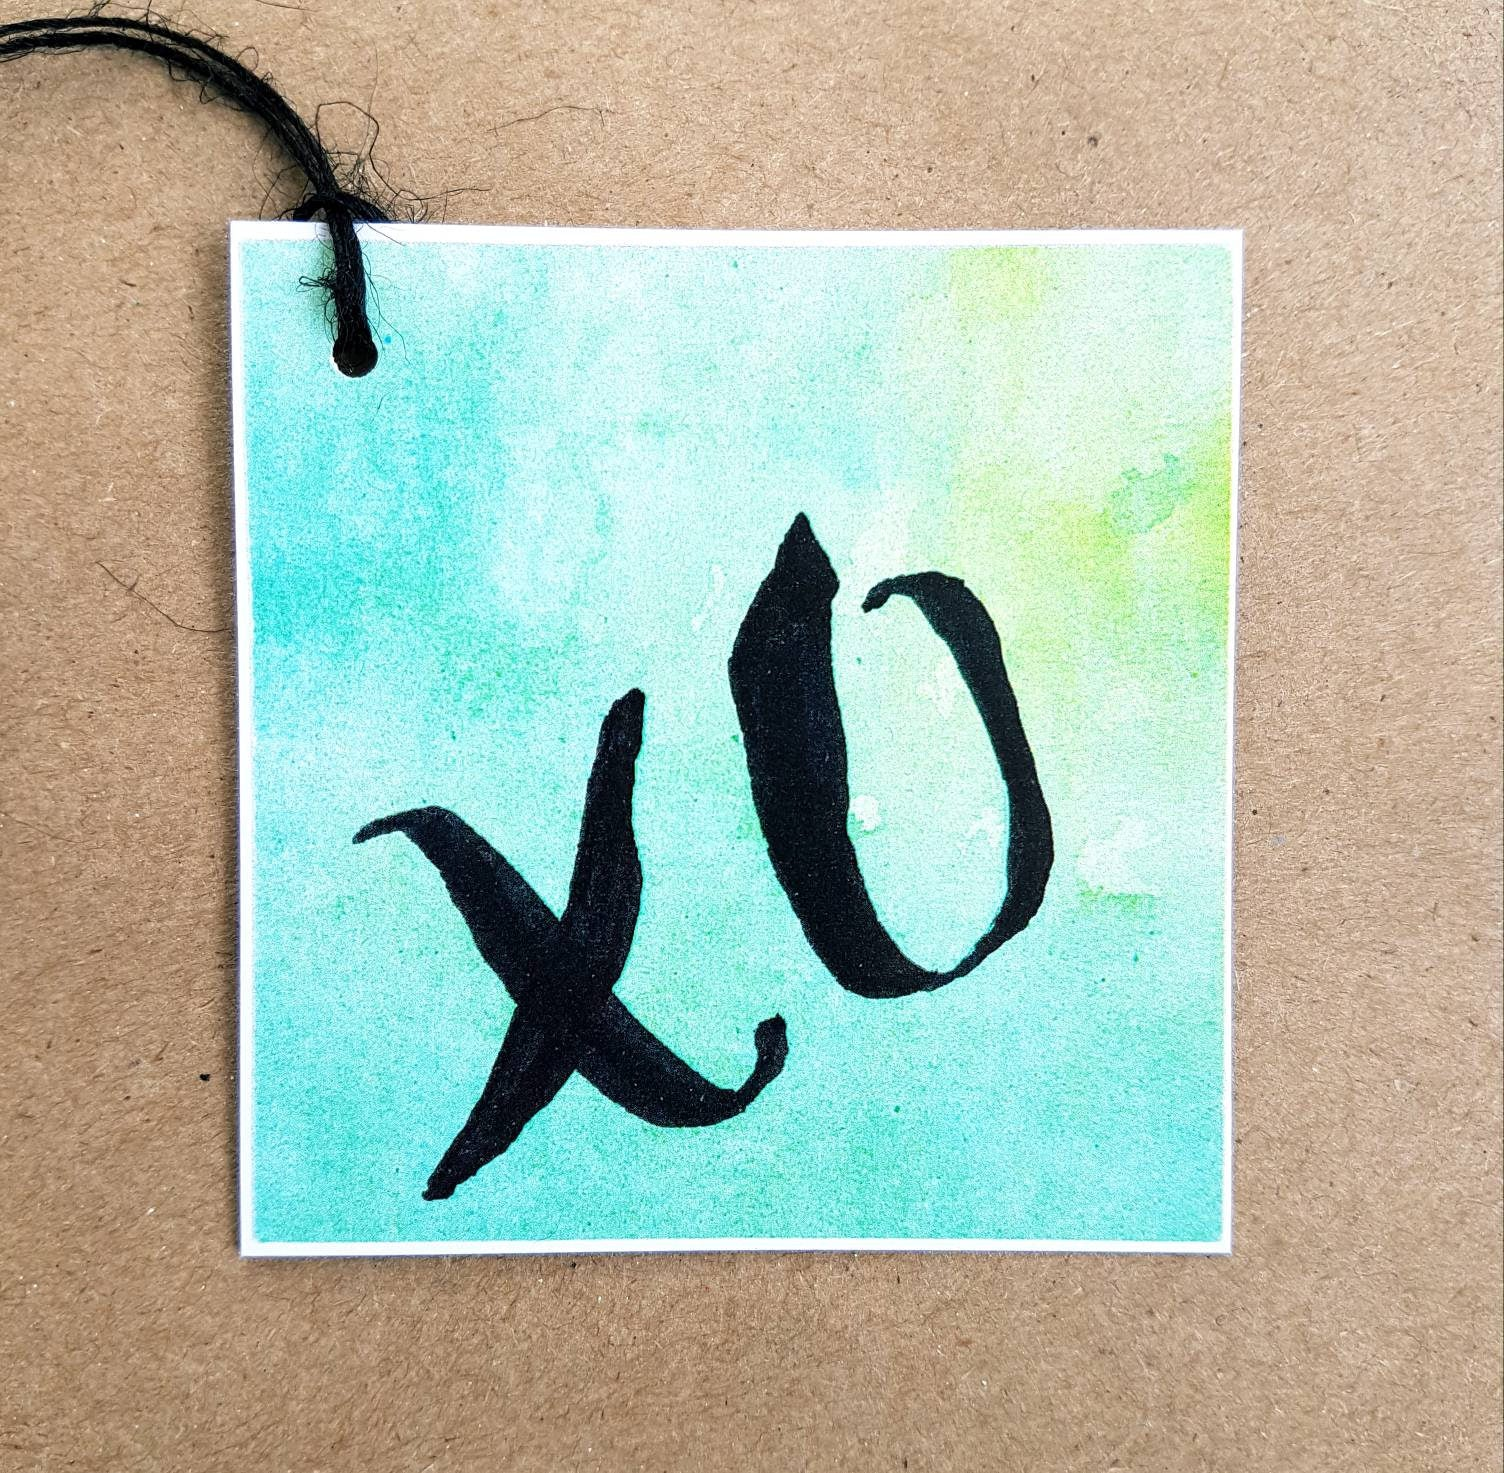 Valentines gift tags , xo gift tags featuring modern calligraphy / brush lettering